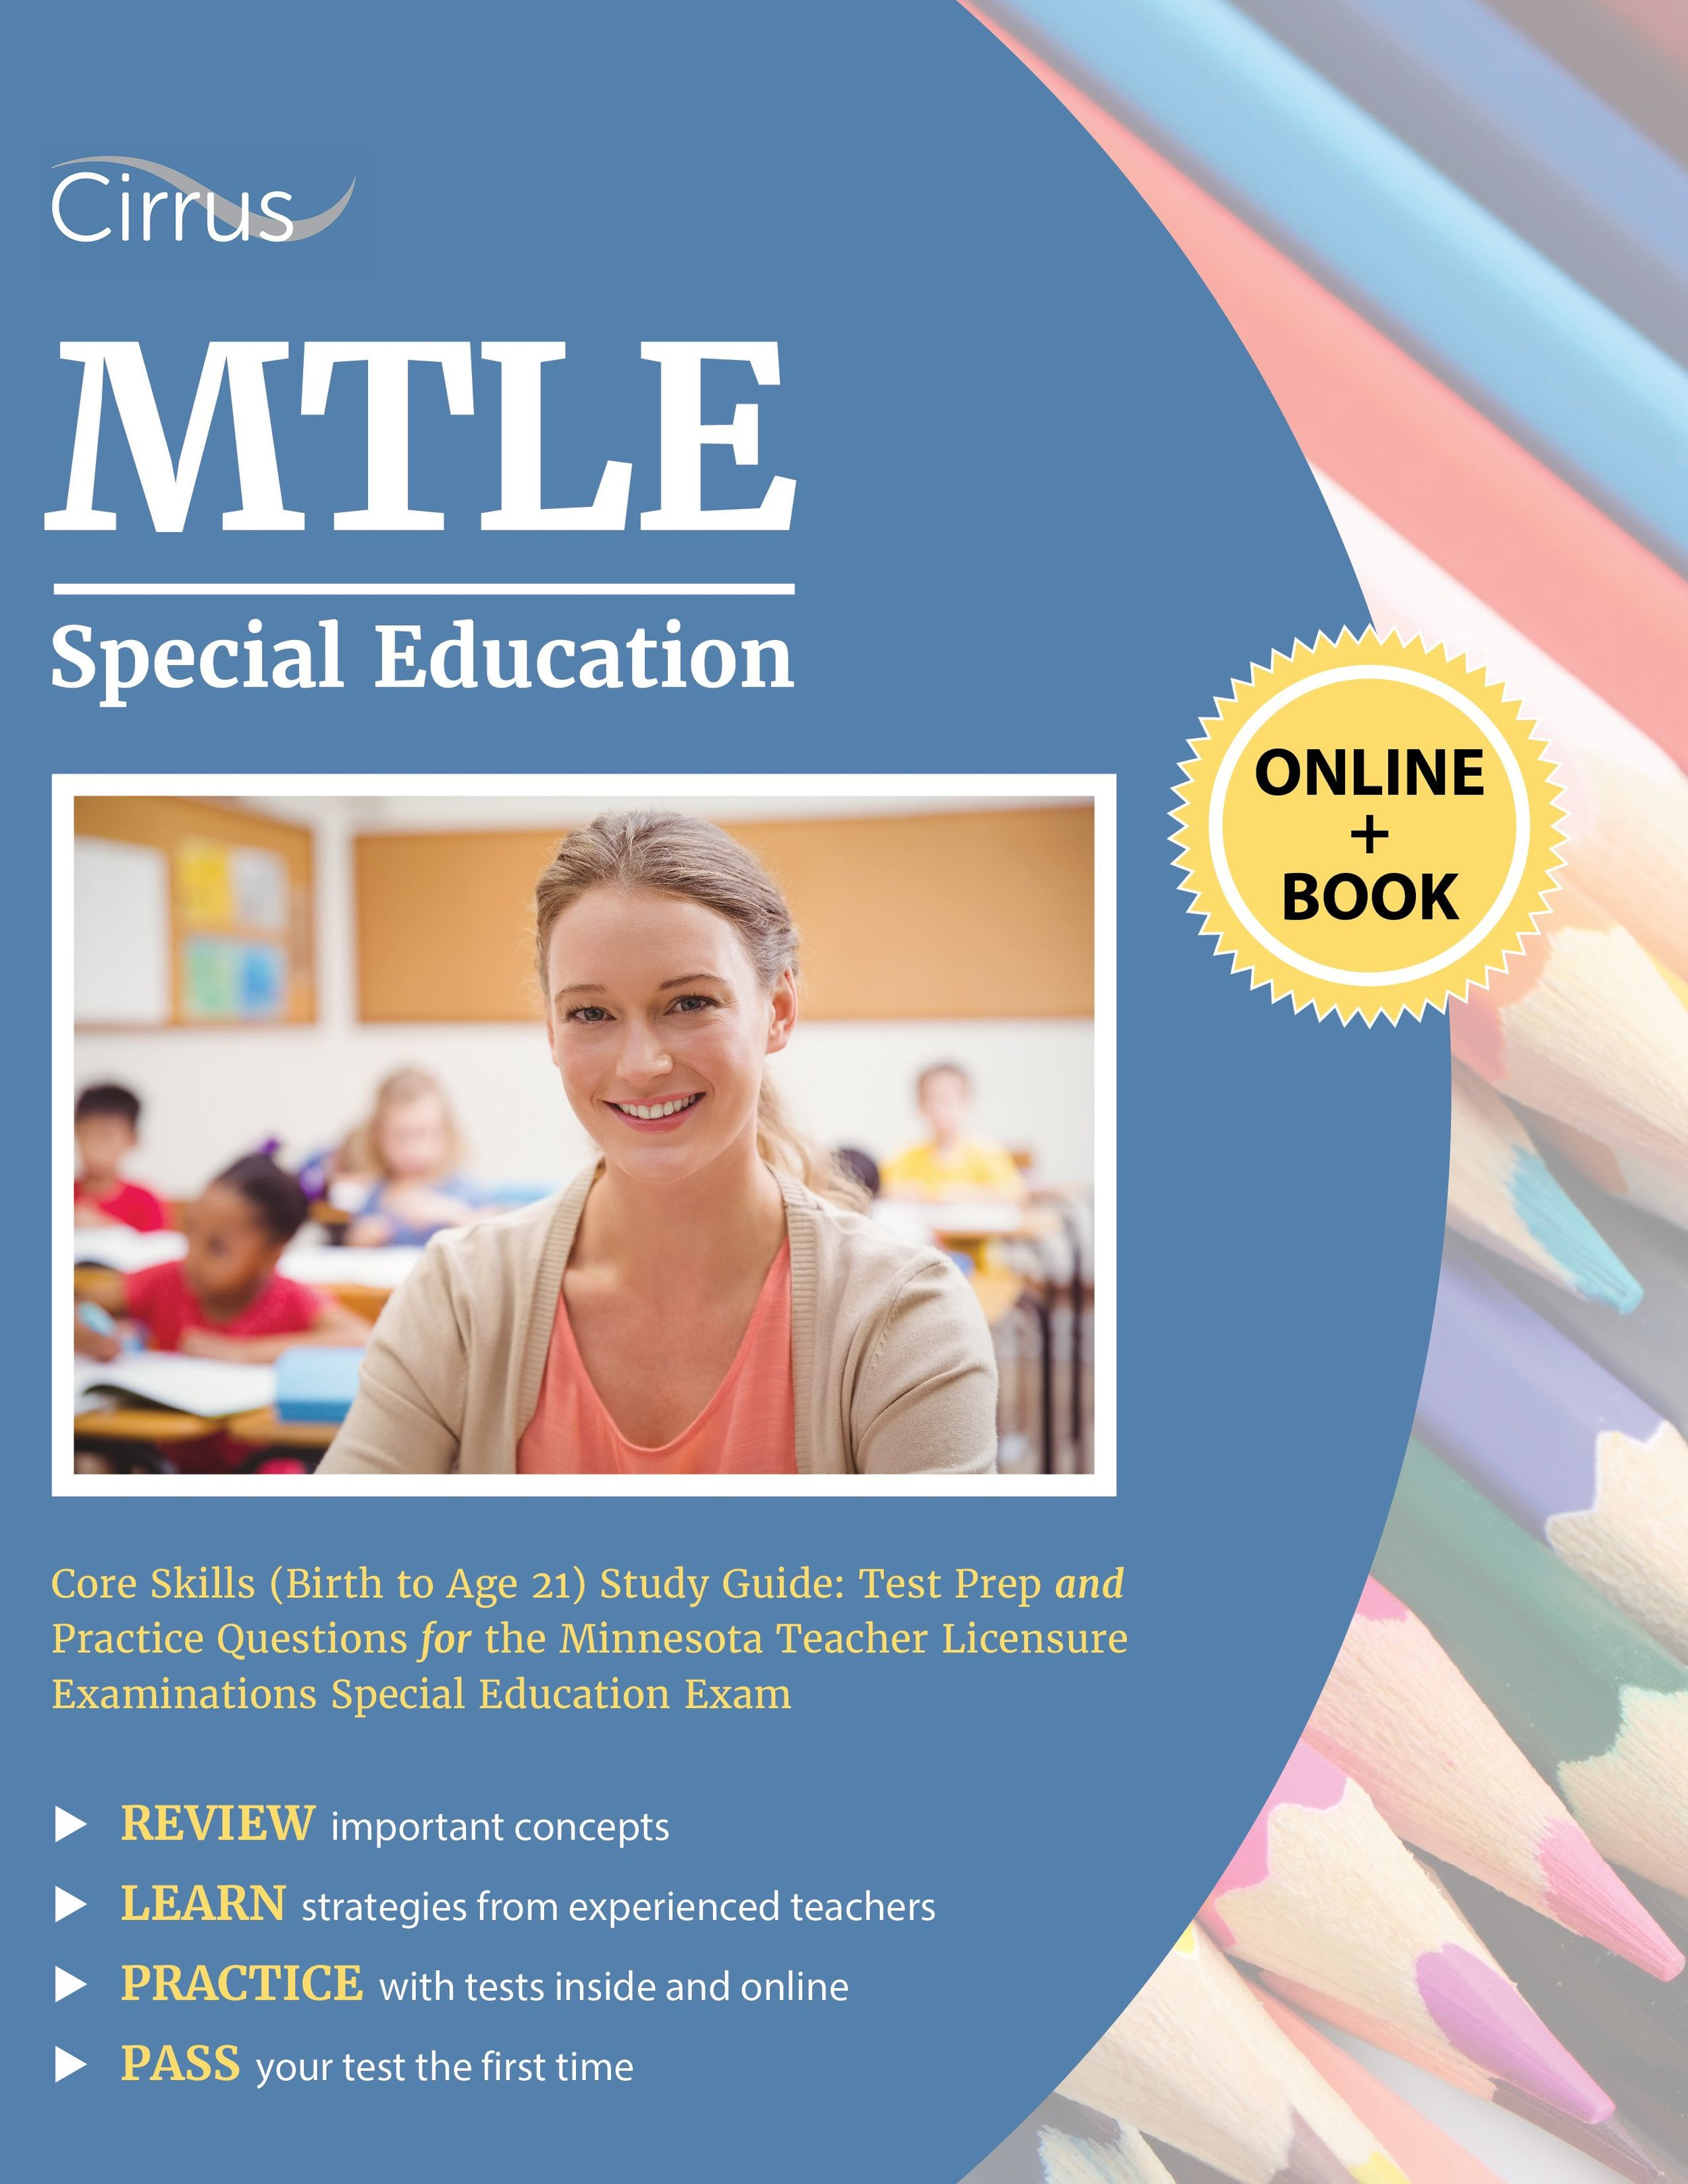 MTLE Special Education Core Skills (Birth to Age 21) Study Guide